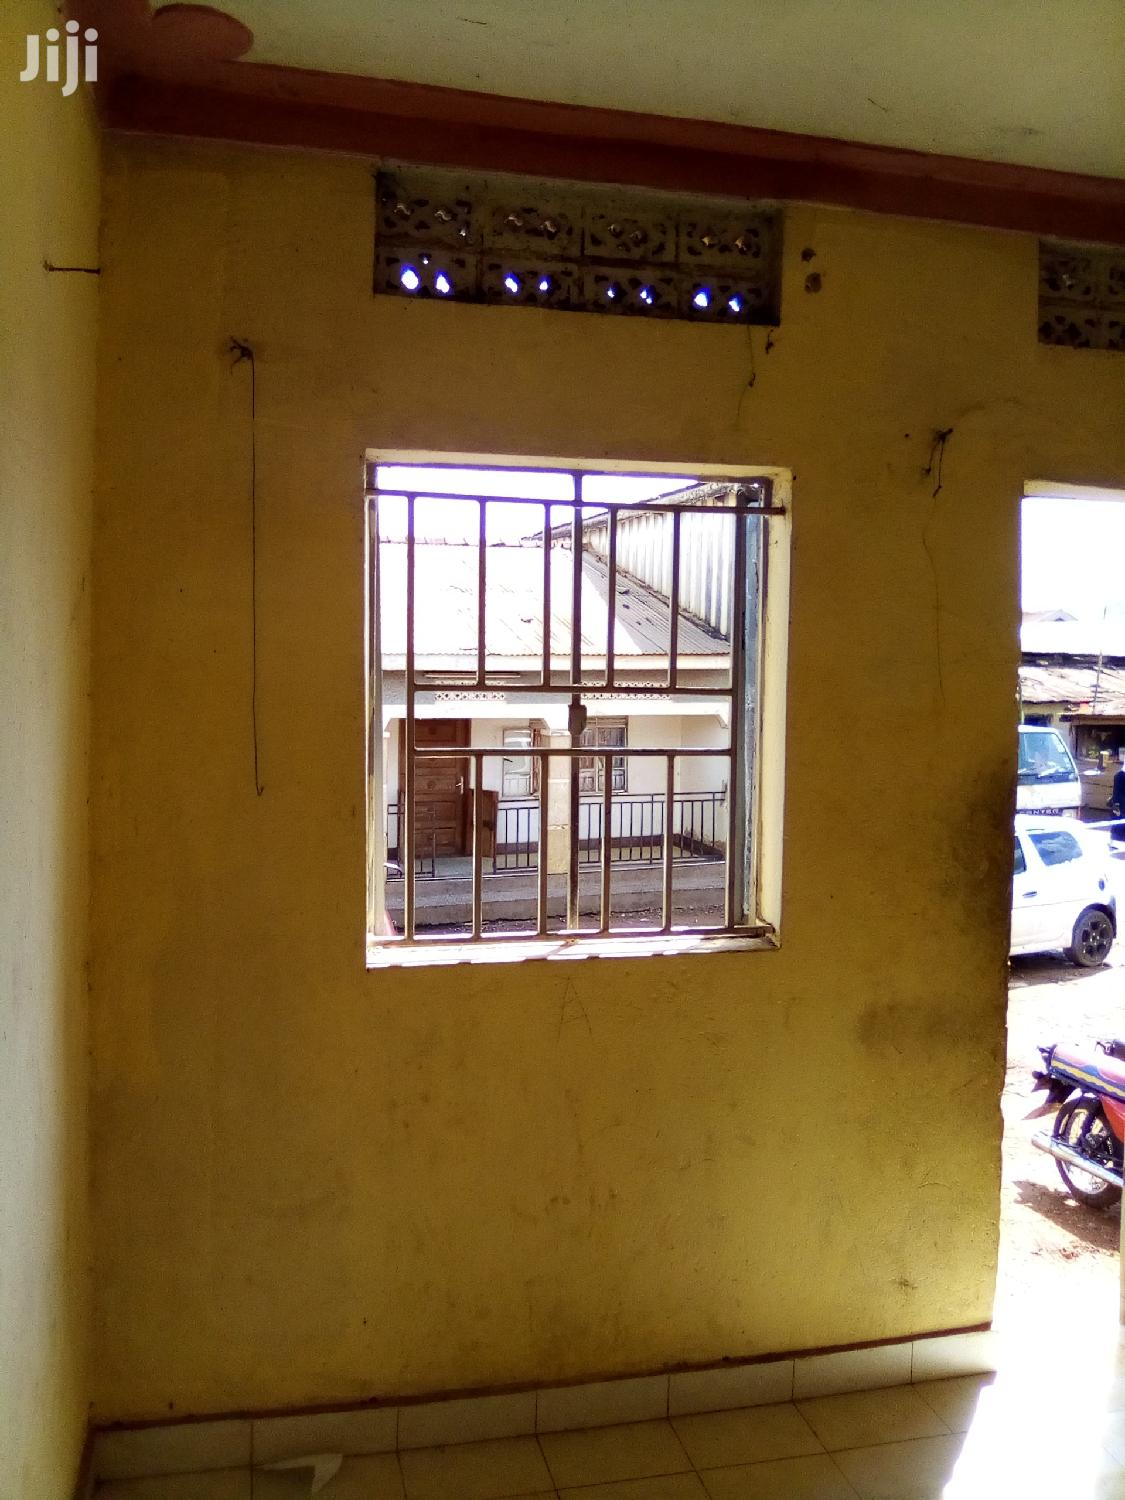 Single Room For Rent In Kitintale | Houses & Apartments For Rent for sale in Kampala, Central Region, Uganda